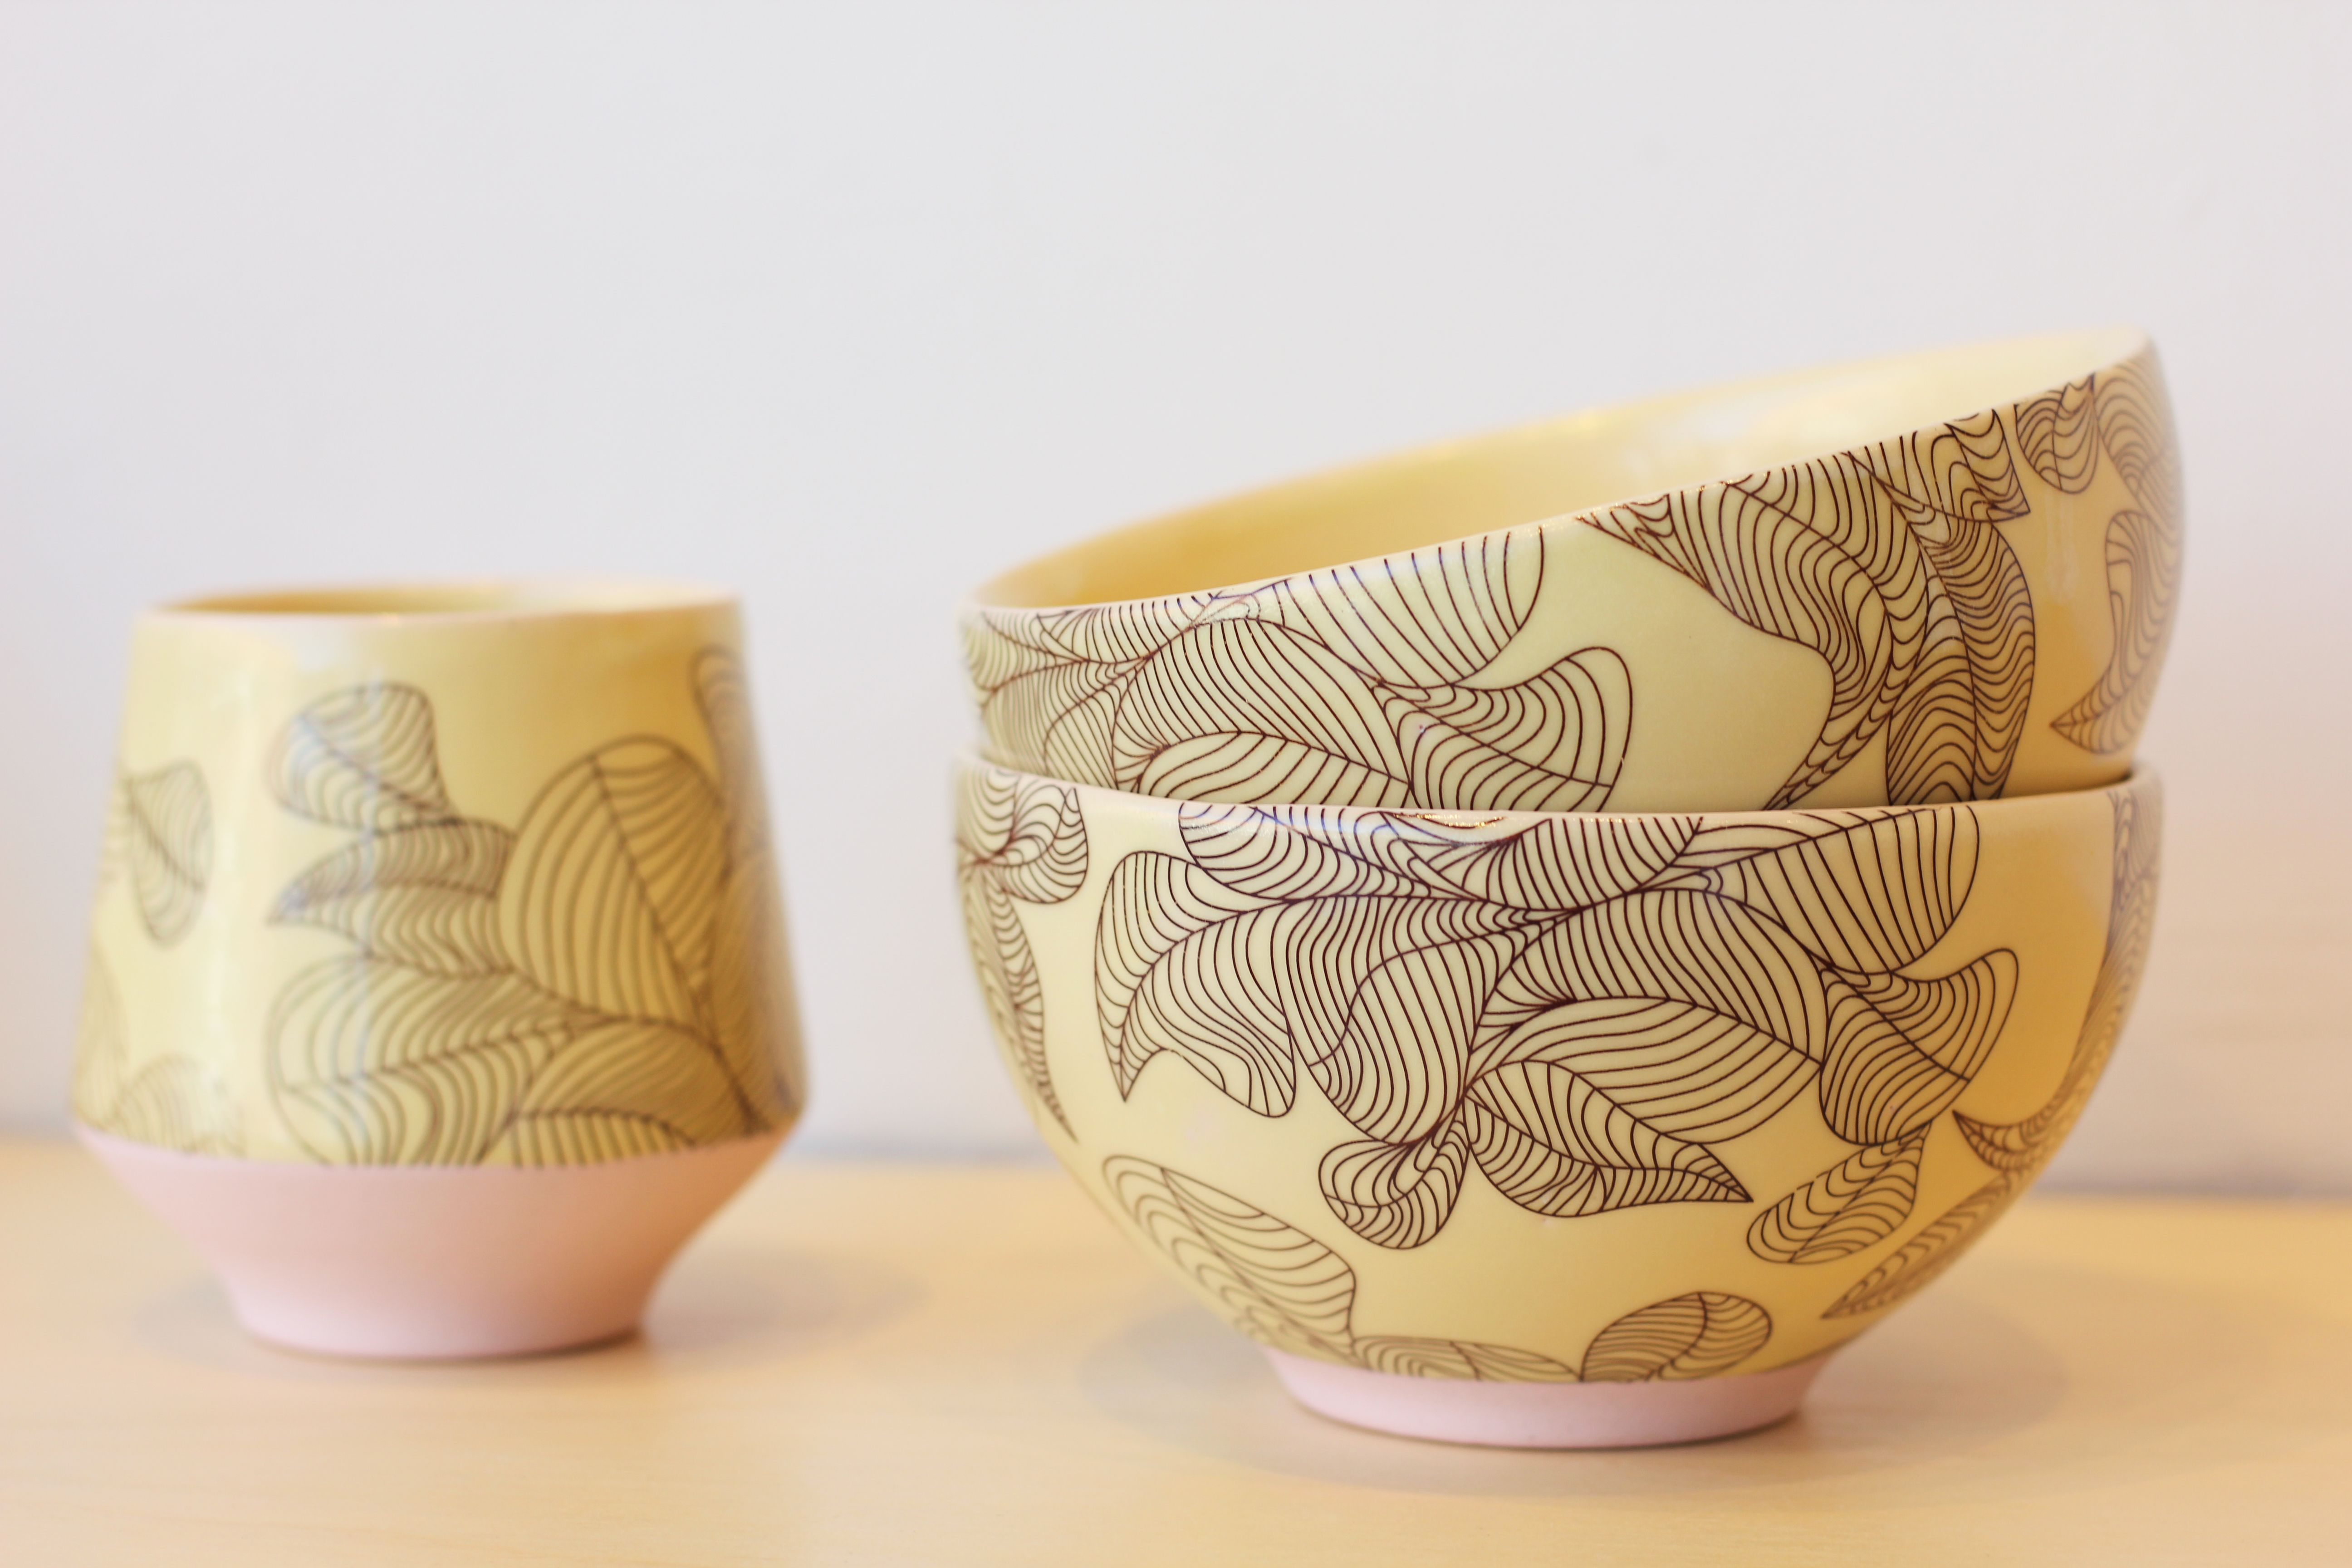 Get ready for Spring with some sweet pastel dinnerware by Andrew Gilliat! (tumbler $48, bowl $52)